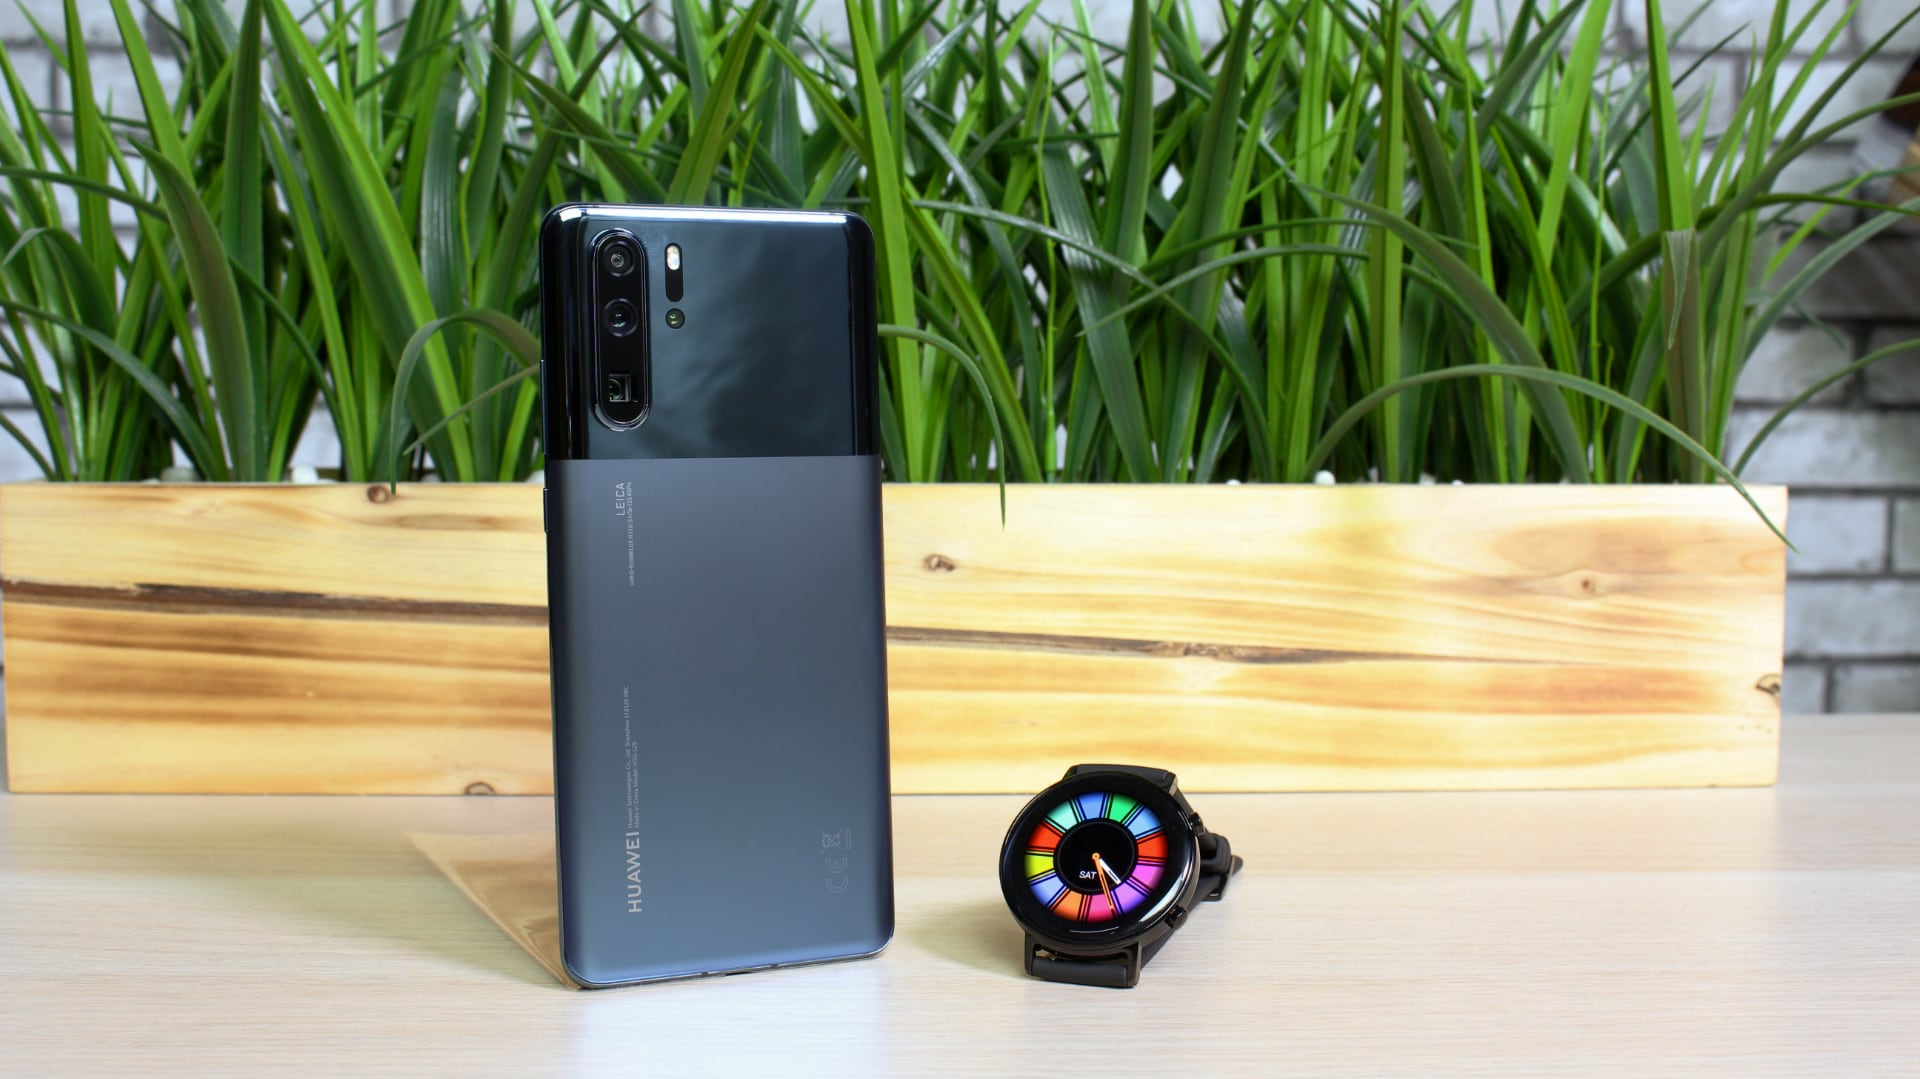 Huawei P30 Pro in new redefined aesthetics and elegant Watch GT 42mm with borderless display are coming to the UAE, and they are as slick as they are functional